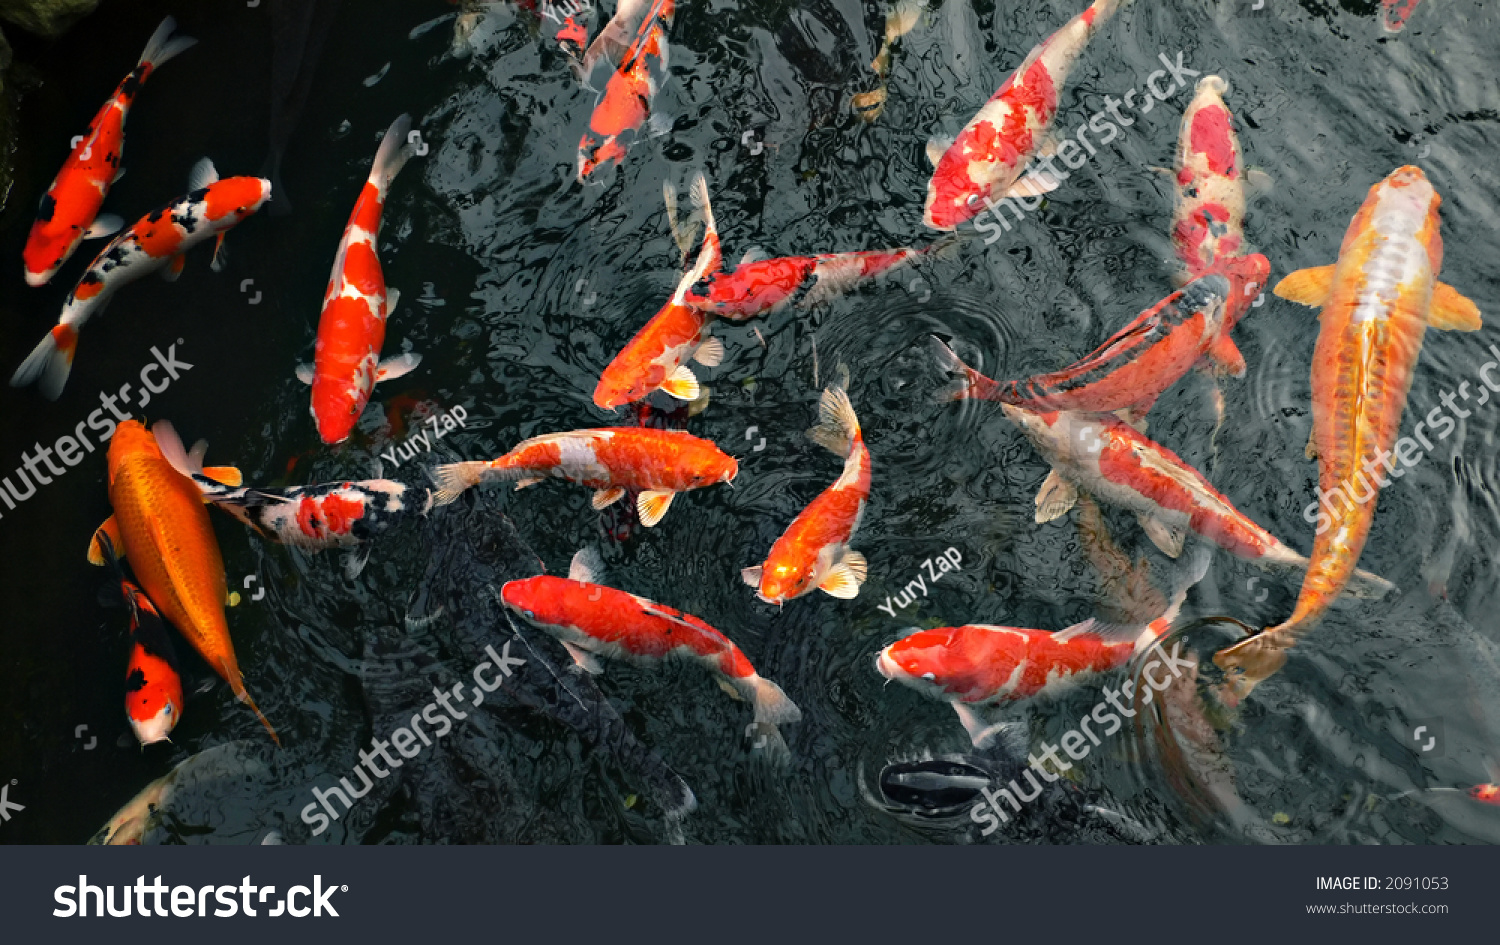 Red carp 39 koi 39 fishes in japanese pond foto stock 2091053 for Red koi carp